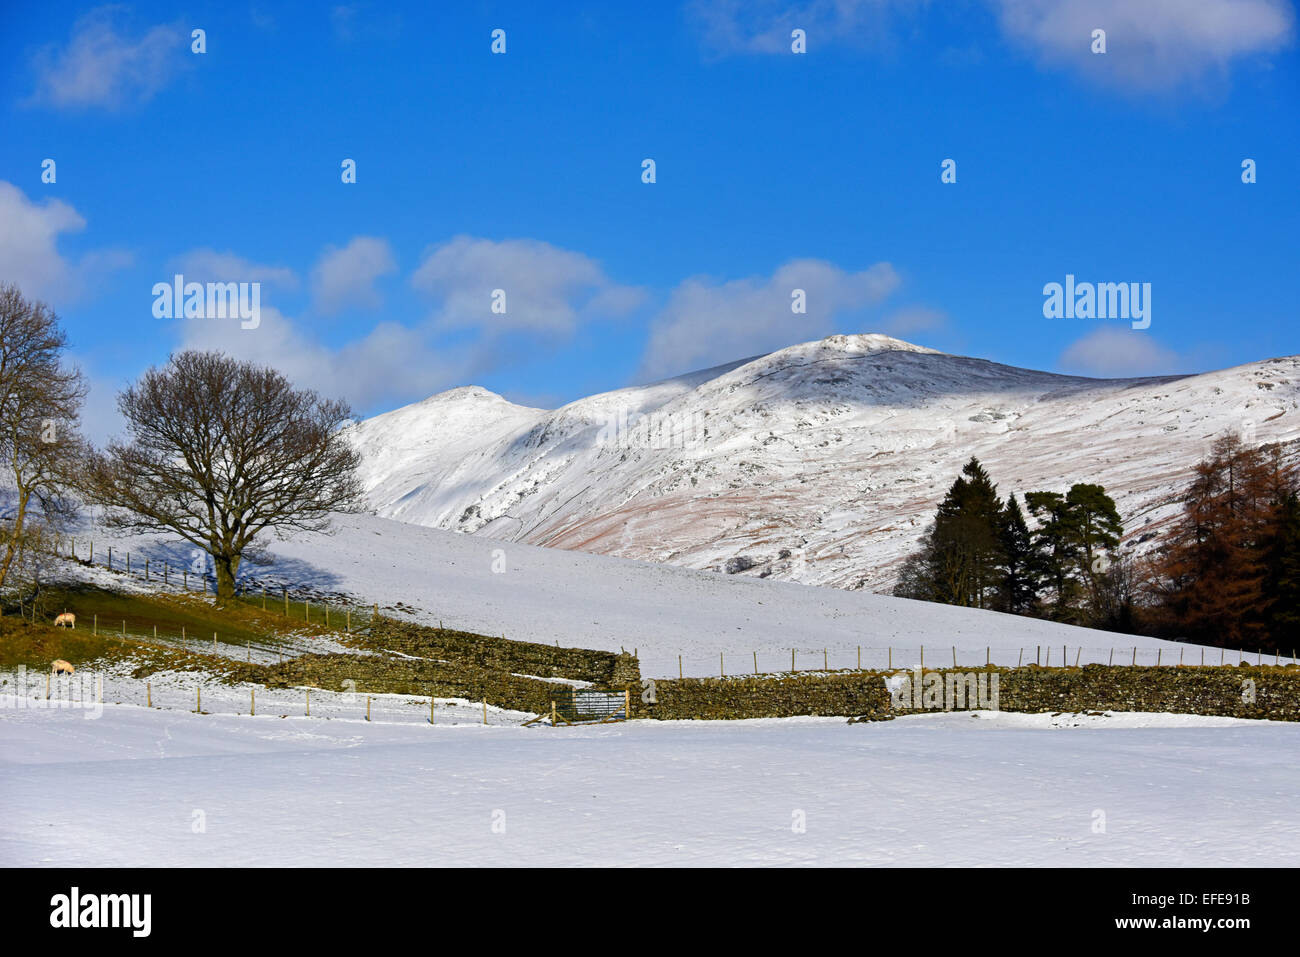 Ill Bell and Yoke. Troutbeck Valley, Lake District National Park, Cumbria, England, United Kingdom, Europe. - Stock Image